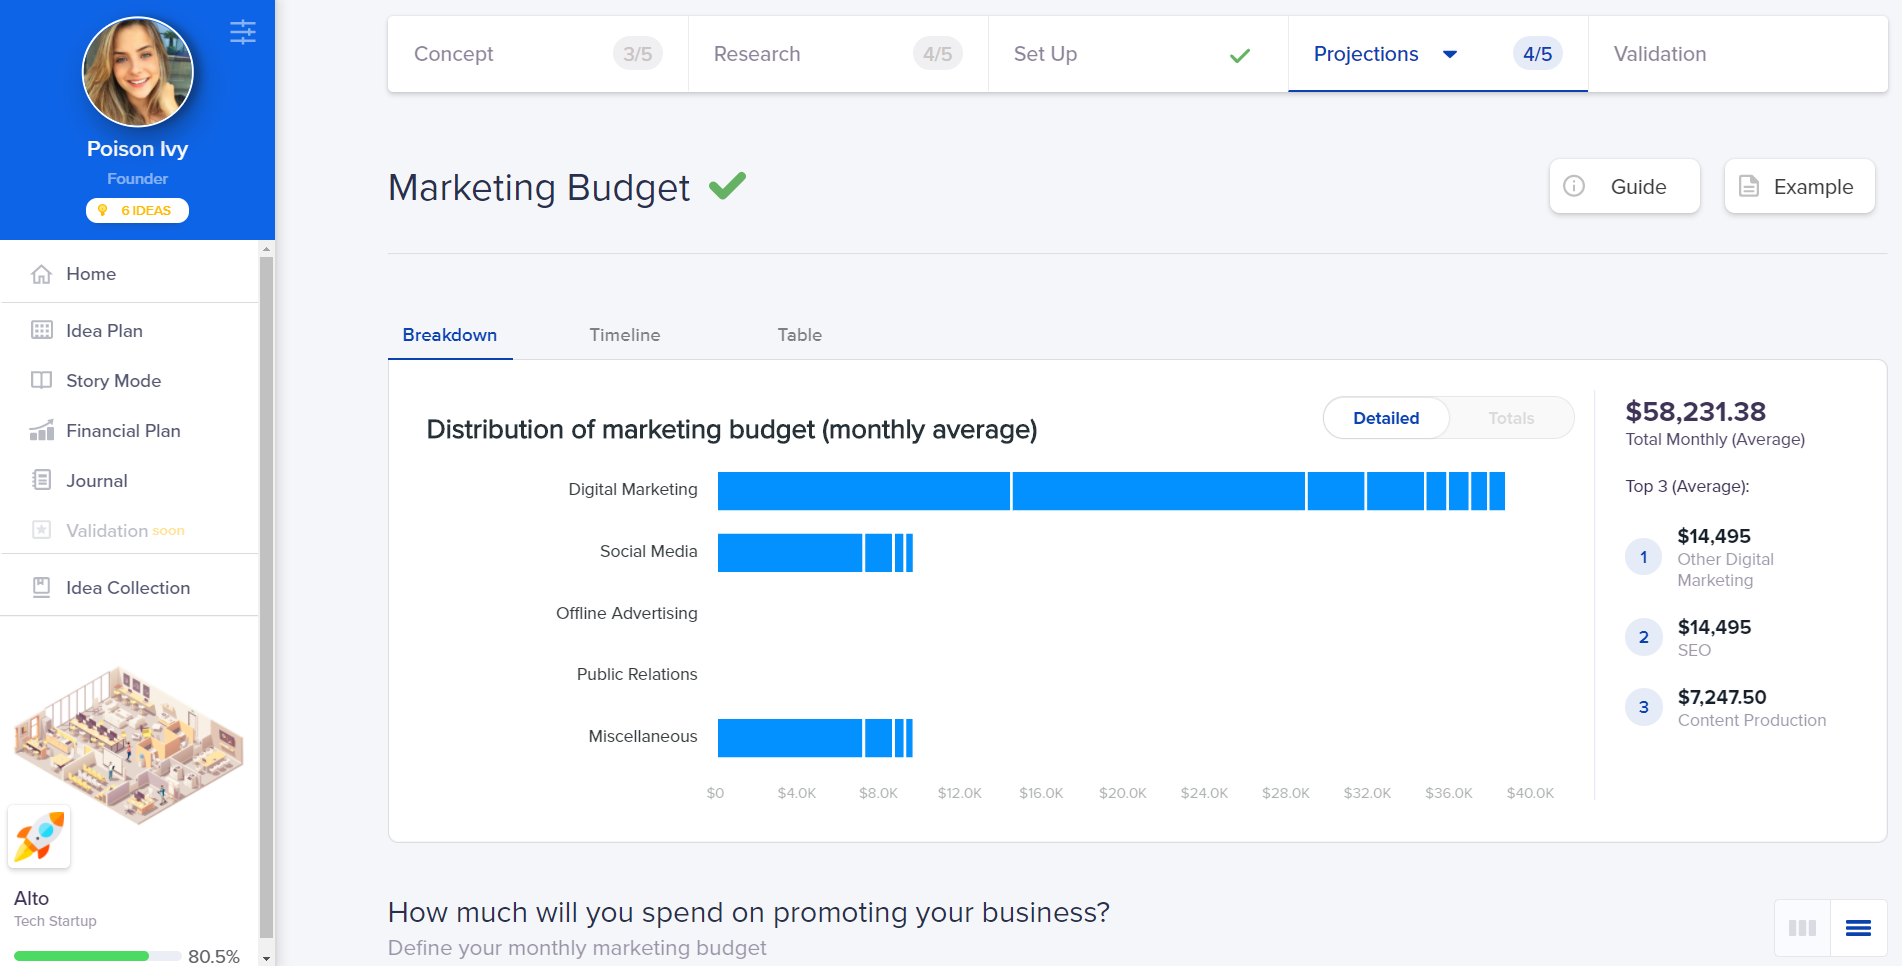 Marketing Budget - Snapshot from IdeaBuddy